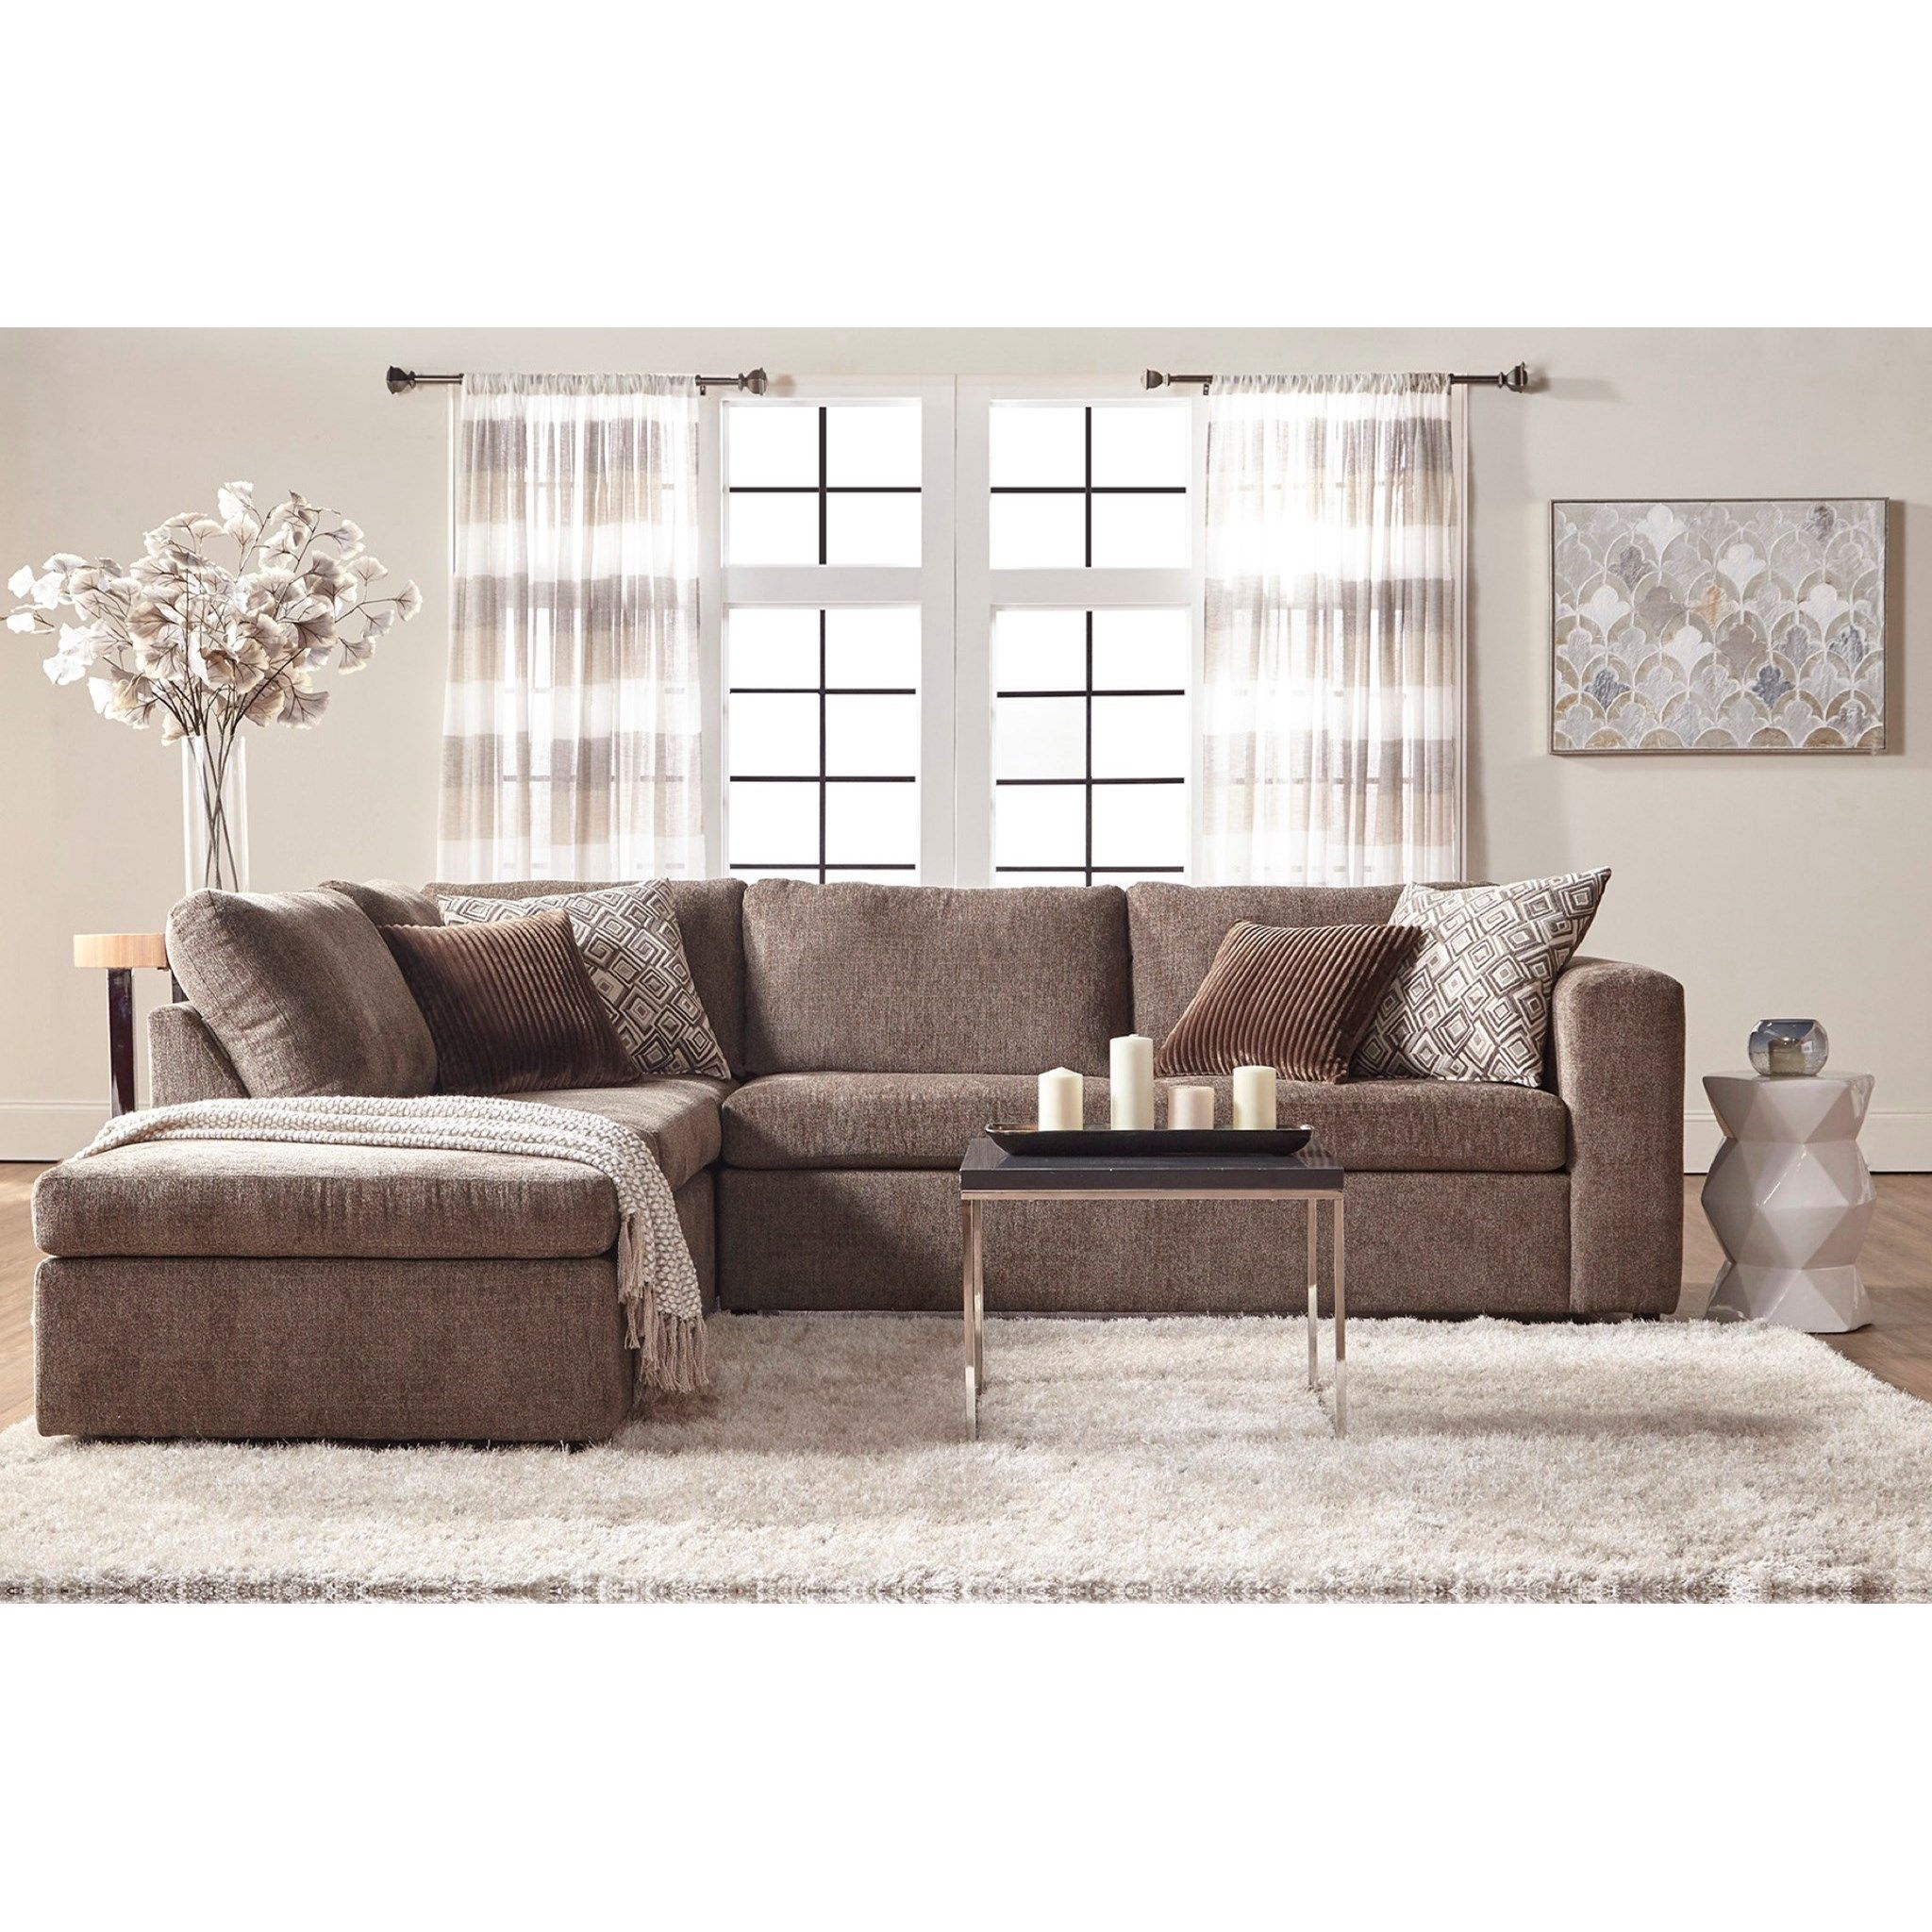 Serta Upholstery By Hughes Furniture 1100 Casual Contemporary Sectional Sofa With Chaise Dar In 2020 Sectional Sofa With Chaise Contemporary Sectional Sofa Furniture #rotmans #living #room #sets